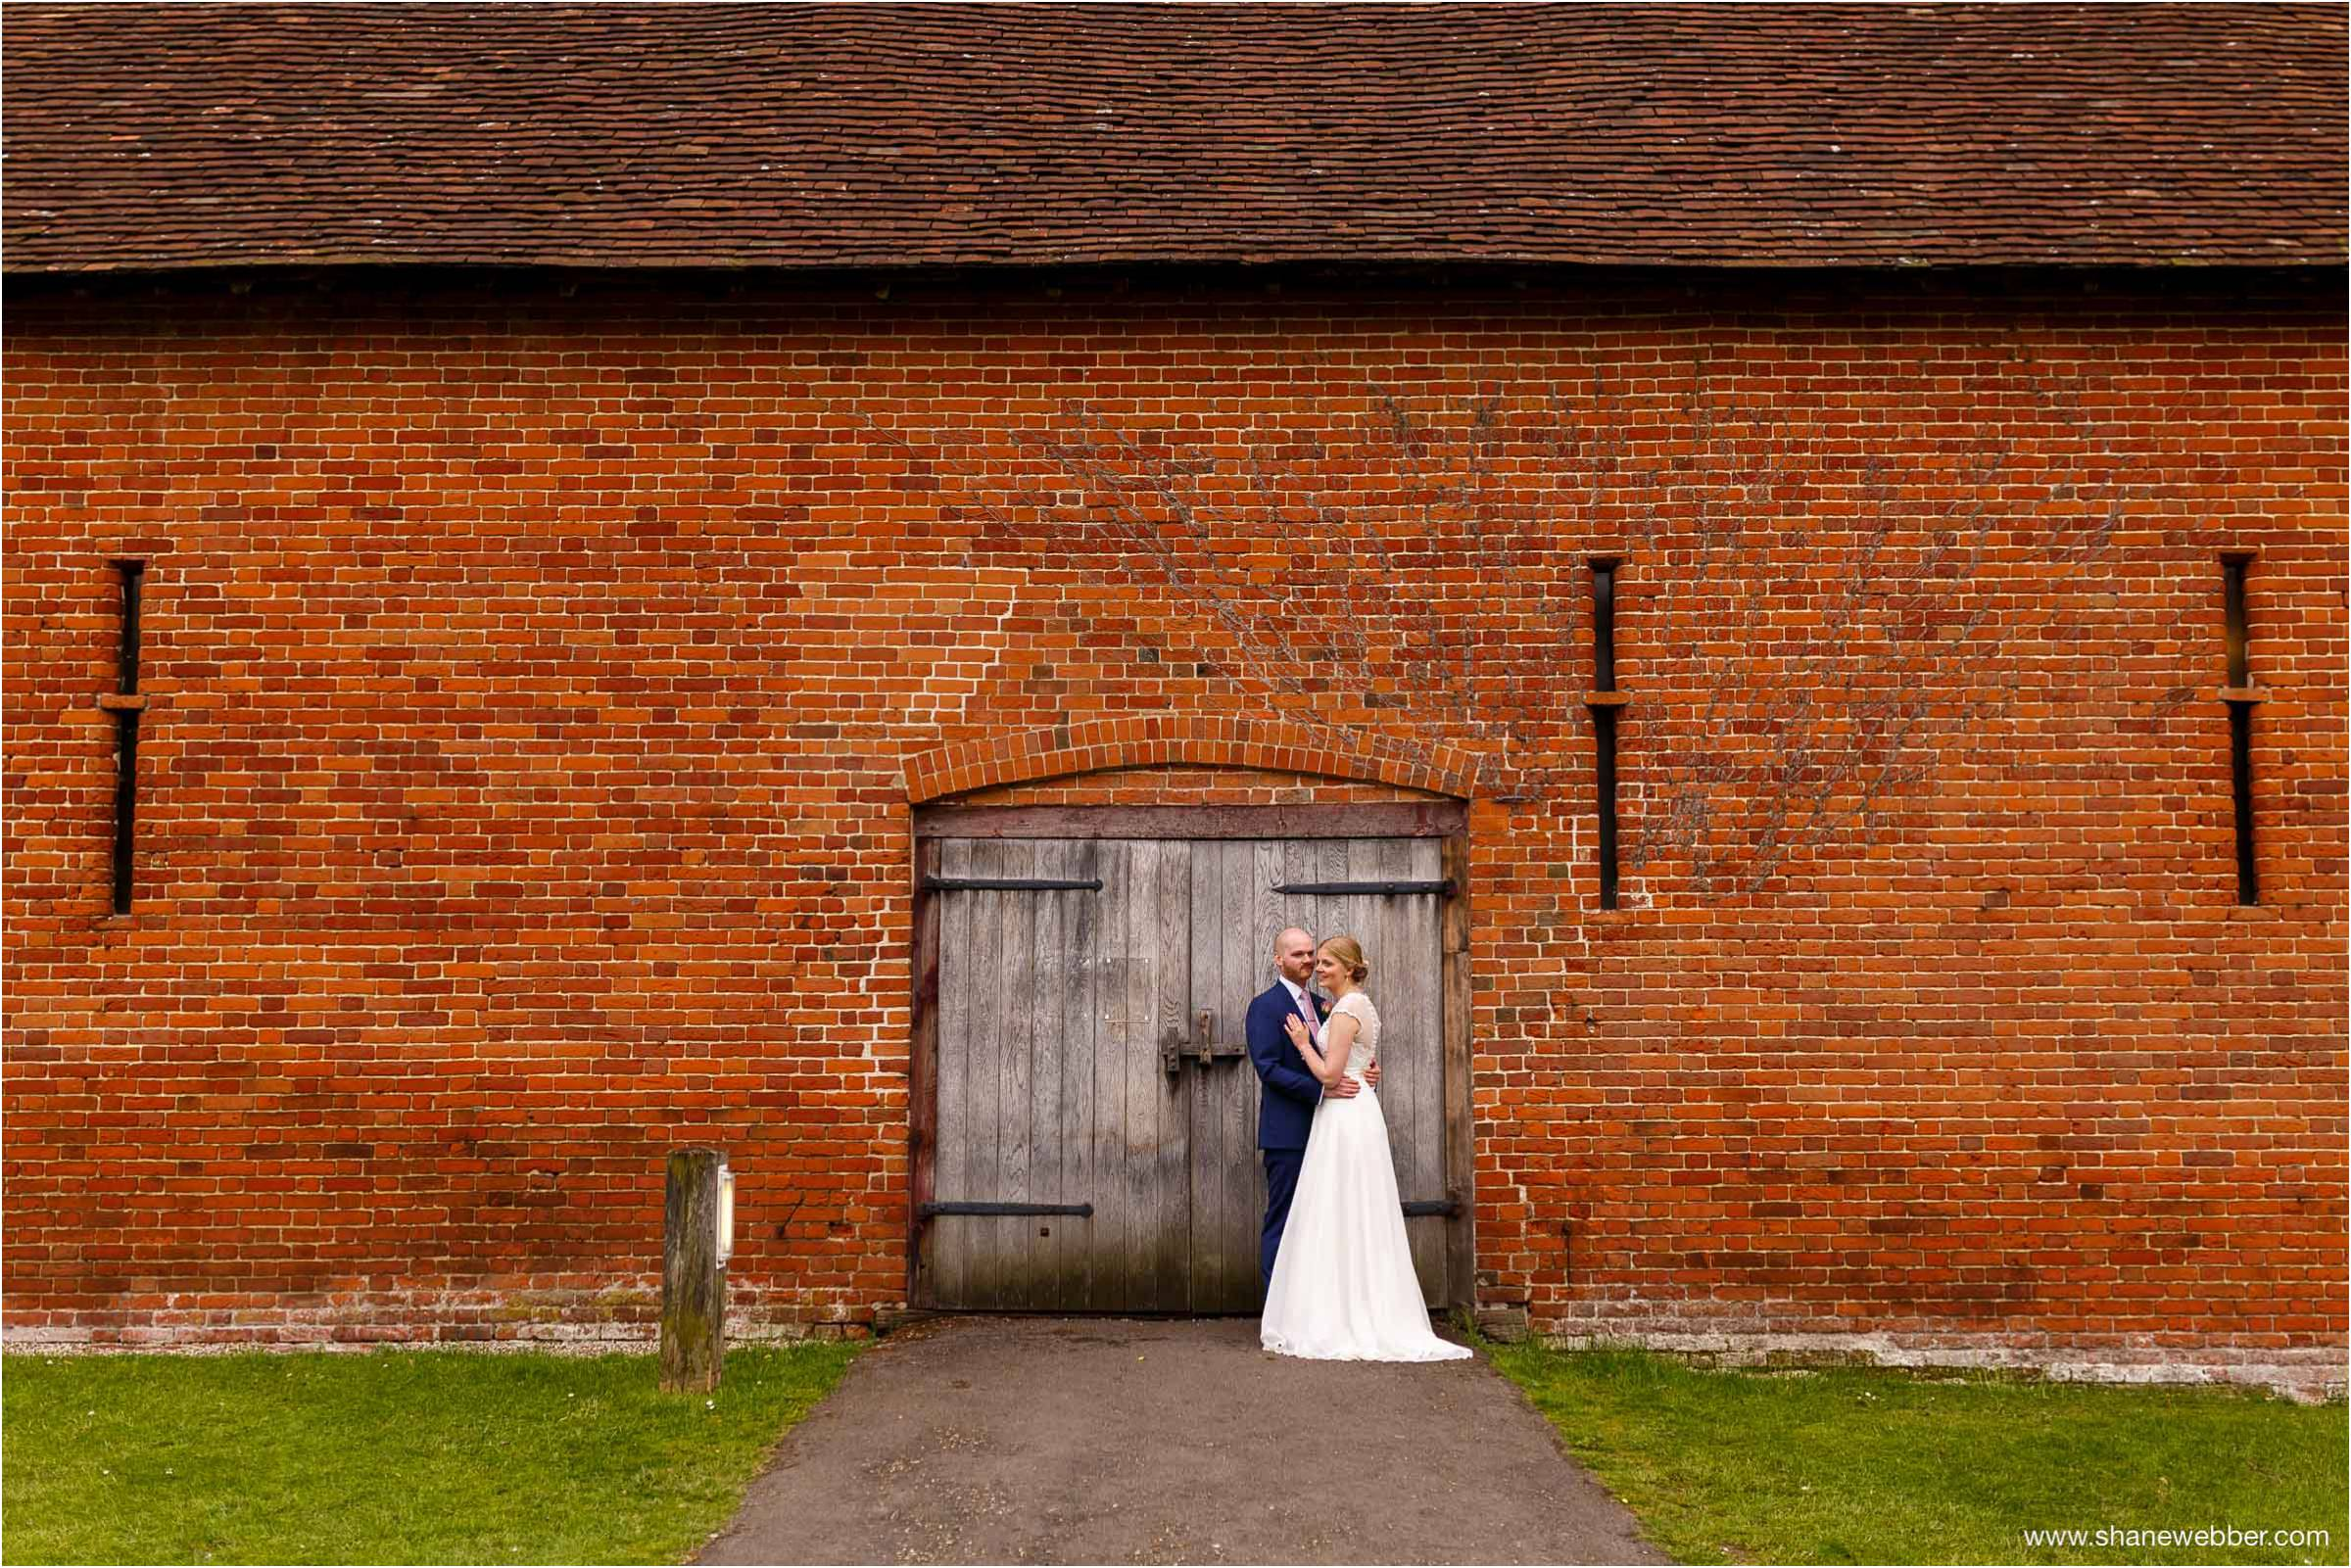 Ufton Court Barn Wedding Photography